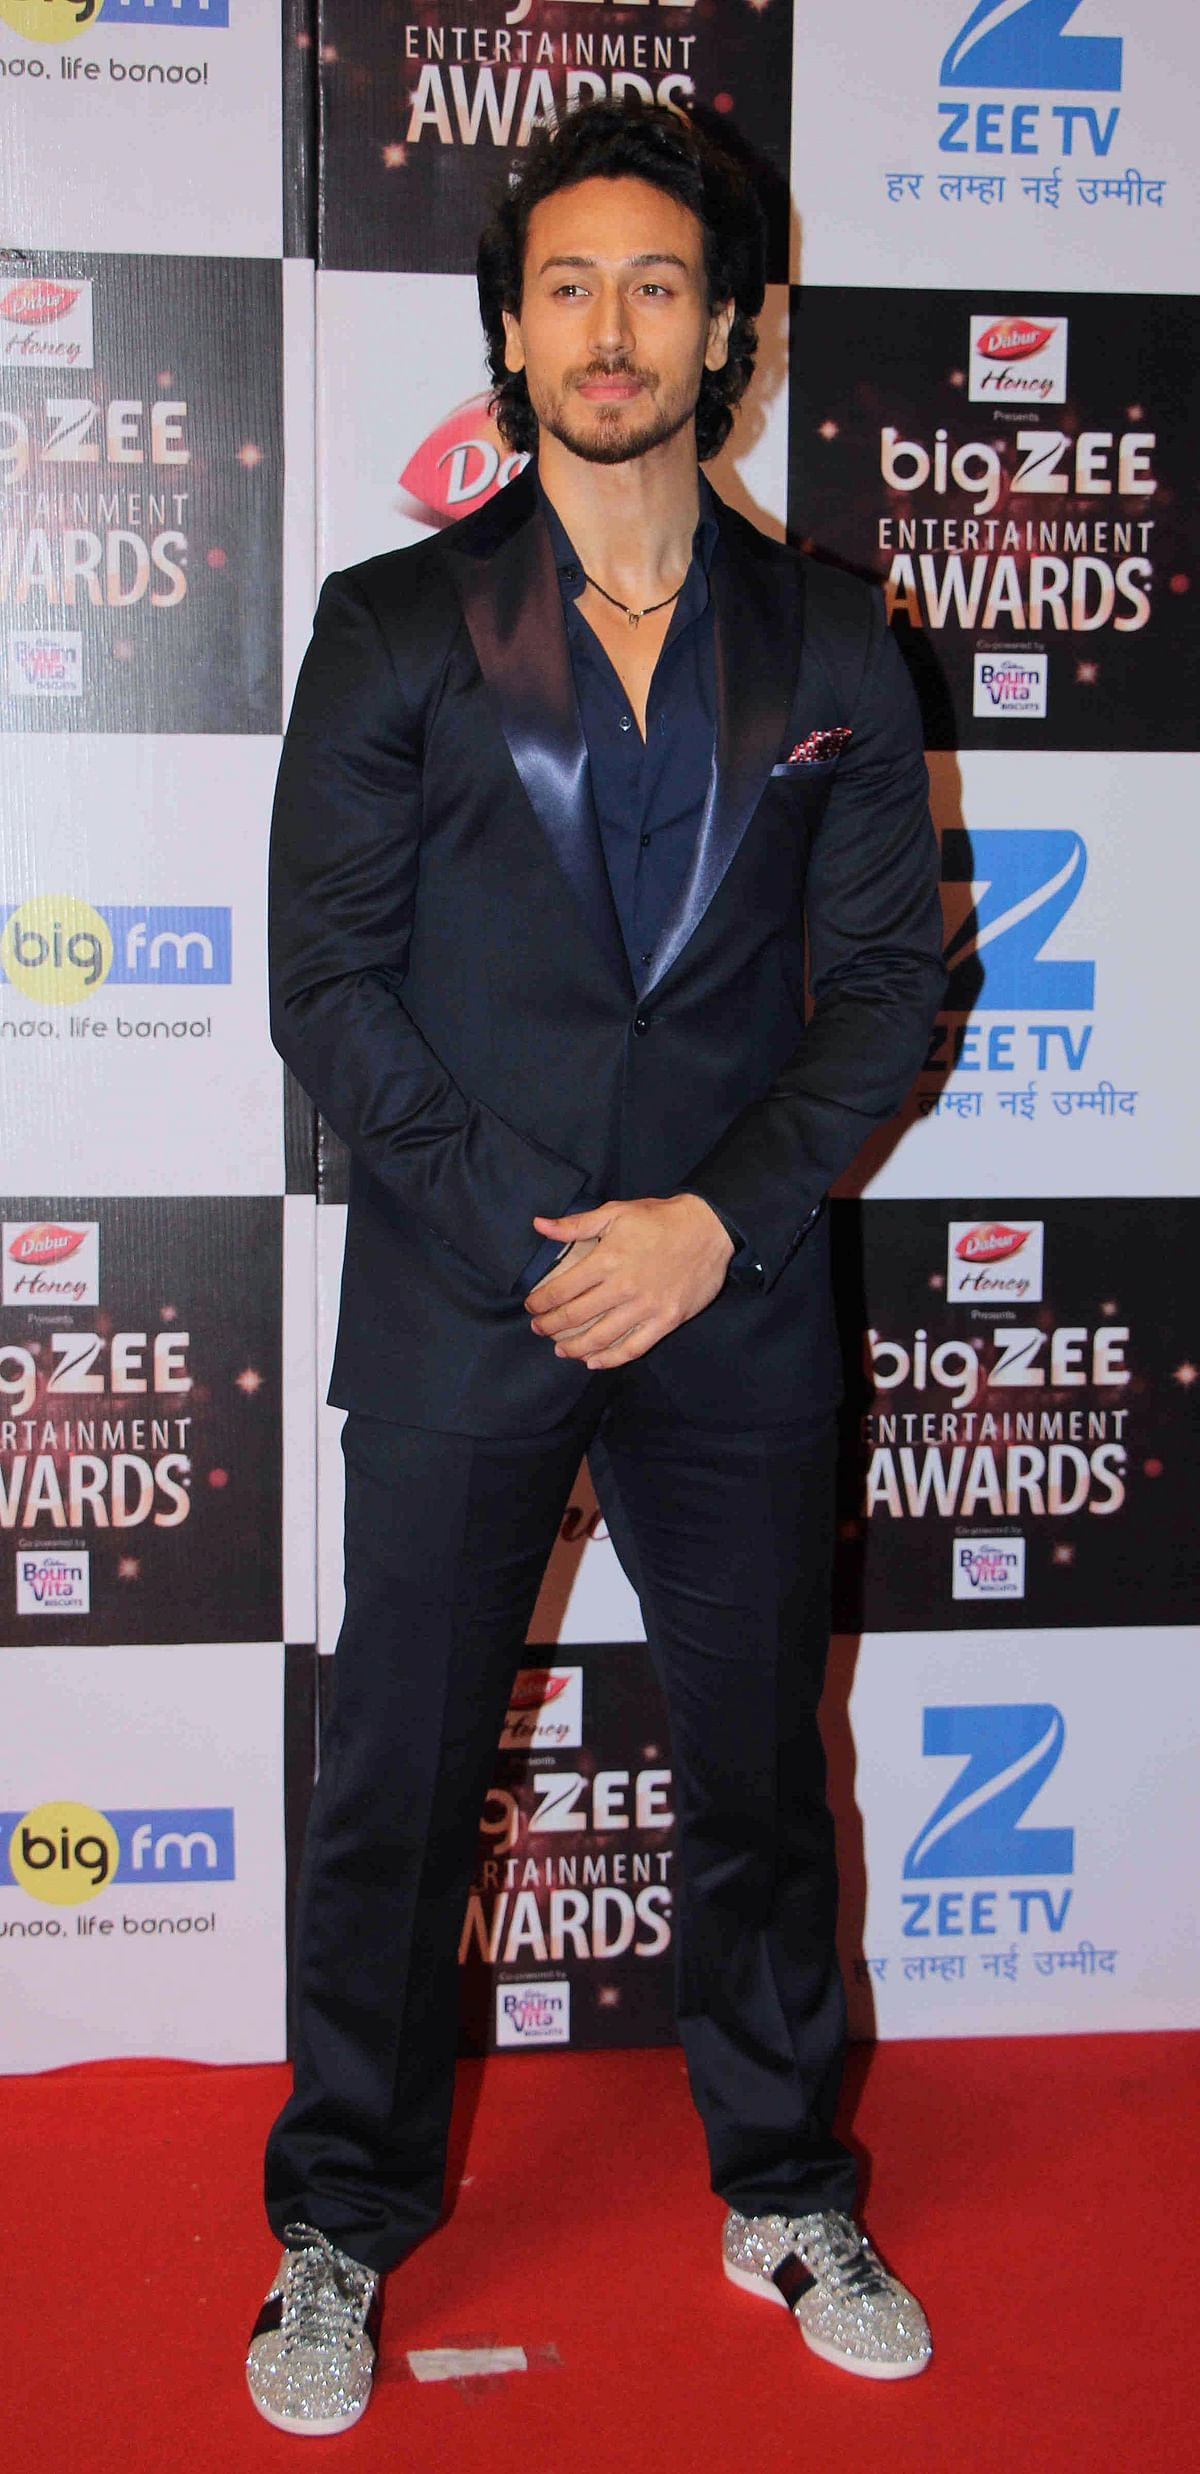 In this photograph taken on July 29, 2017, Indian Bollywood actor Tiger Shroff attends the BIG ZEE Entertainment Awards 2017 ceremony in Mumbai. / AFP PHOTO / STR